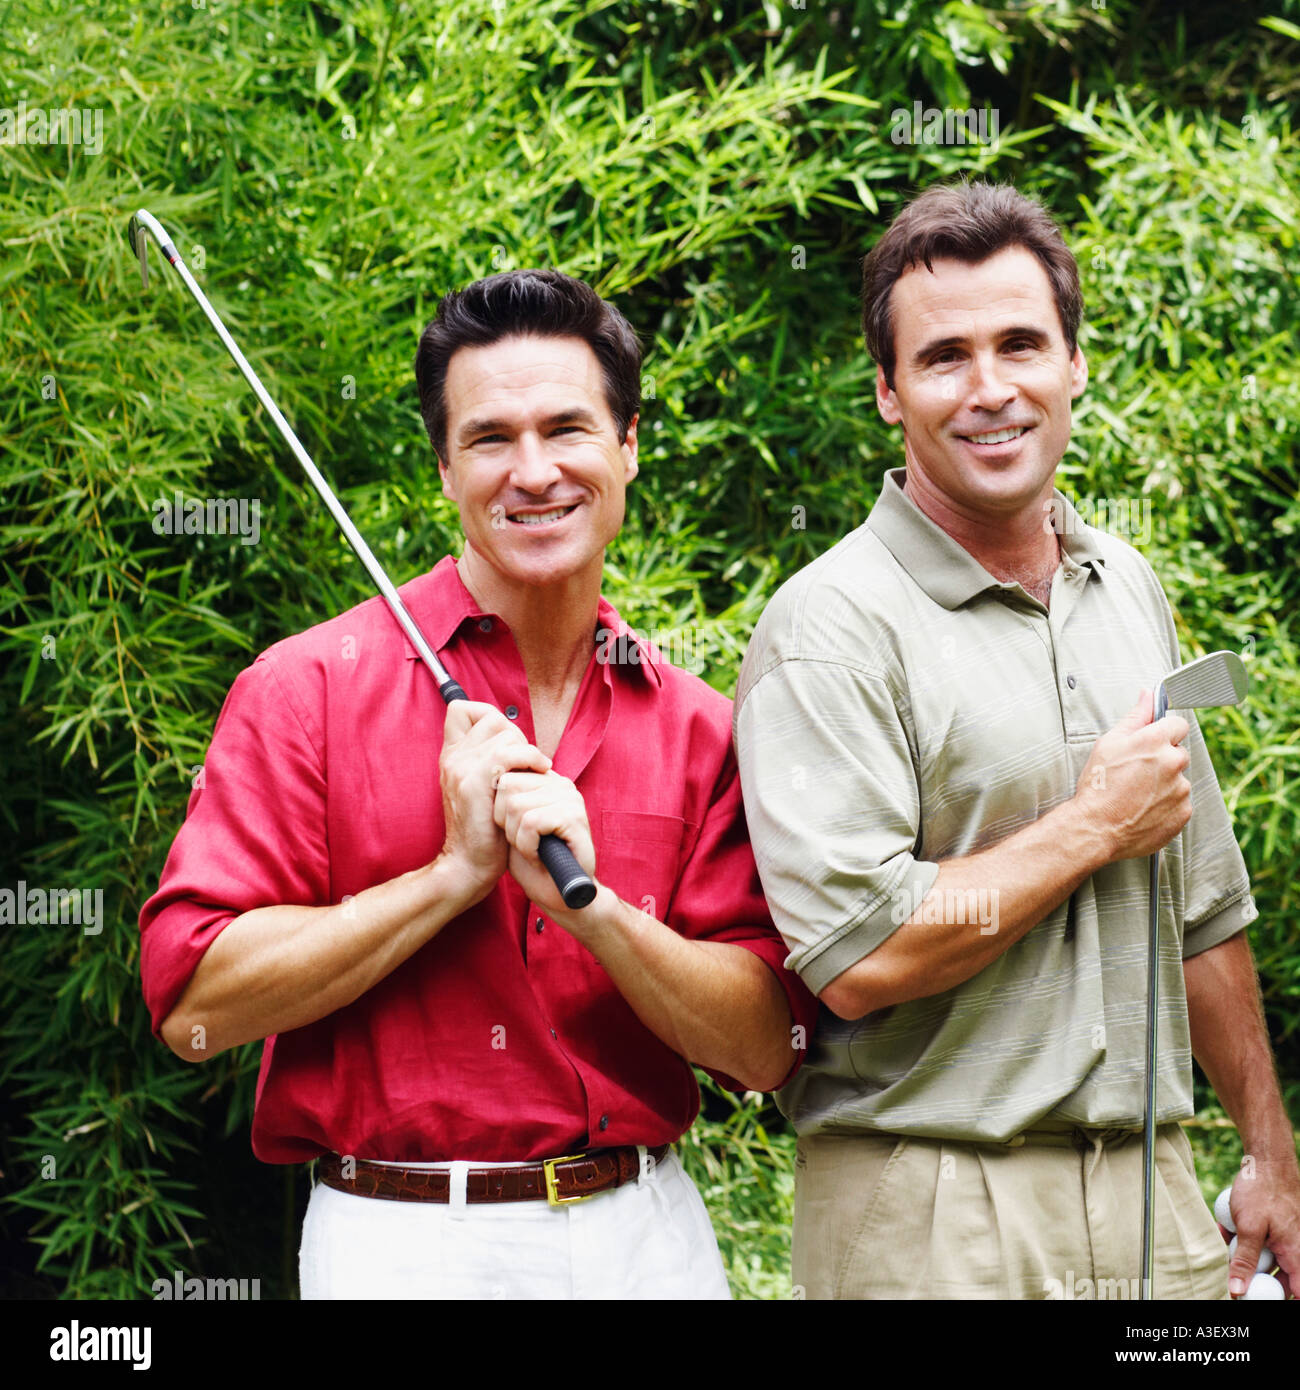 Two mature men holding golf clubs and smiling - Stock Image